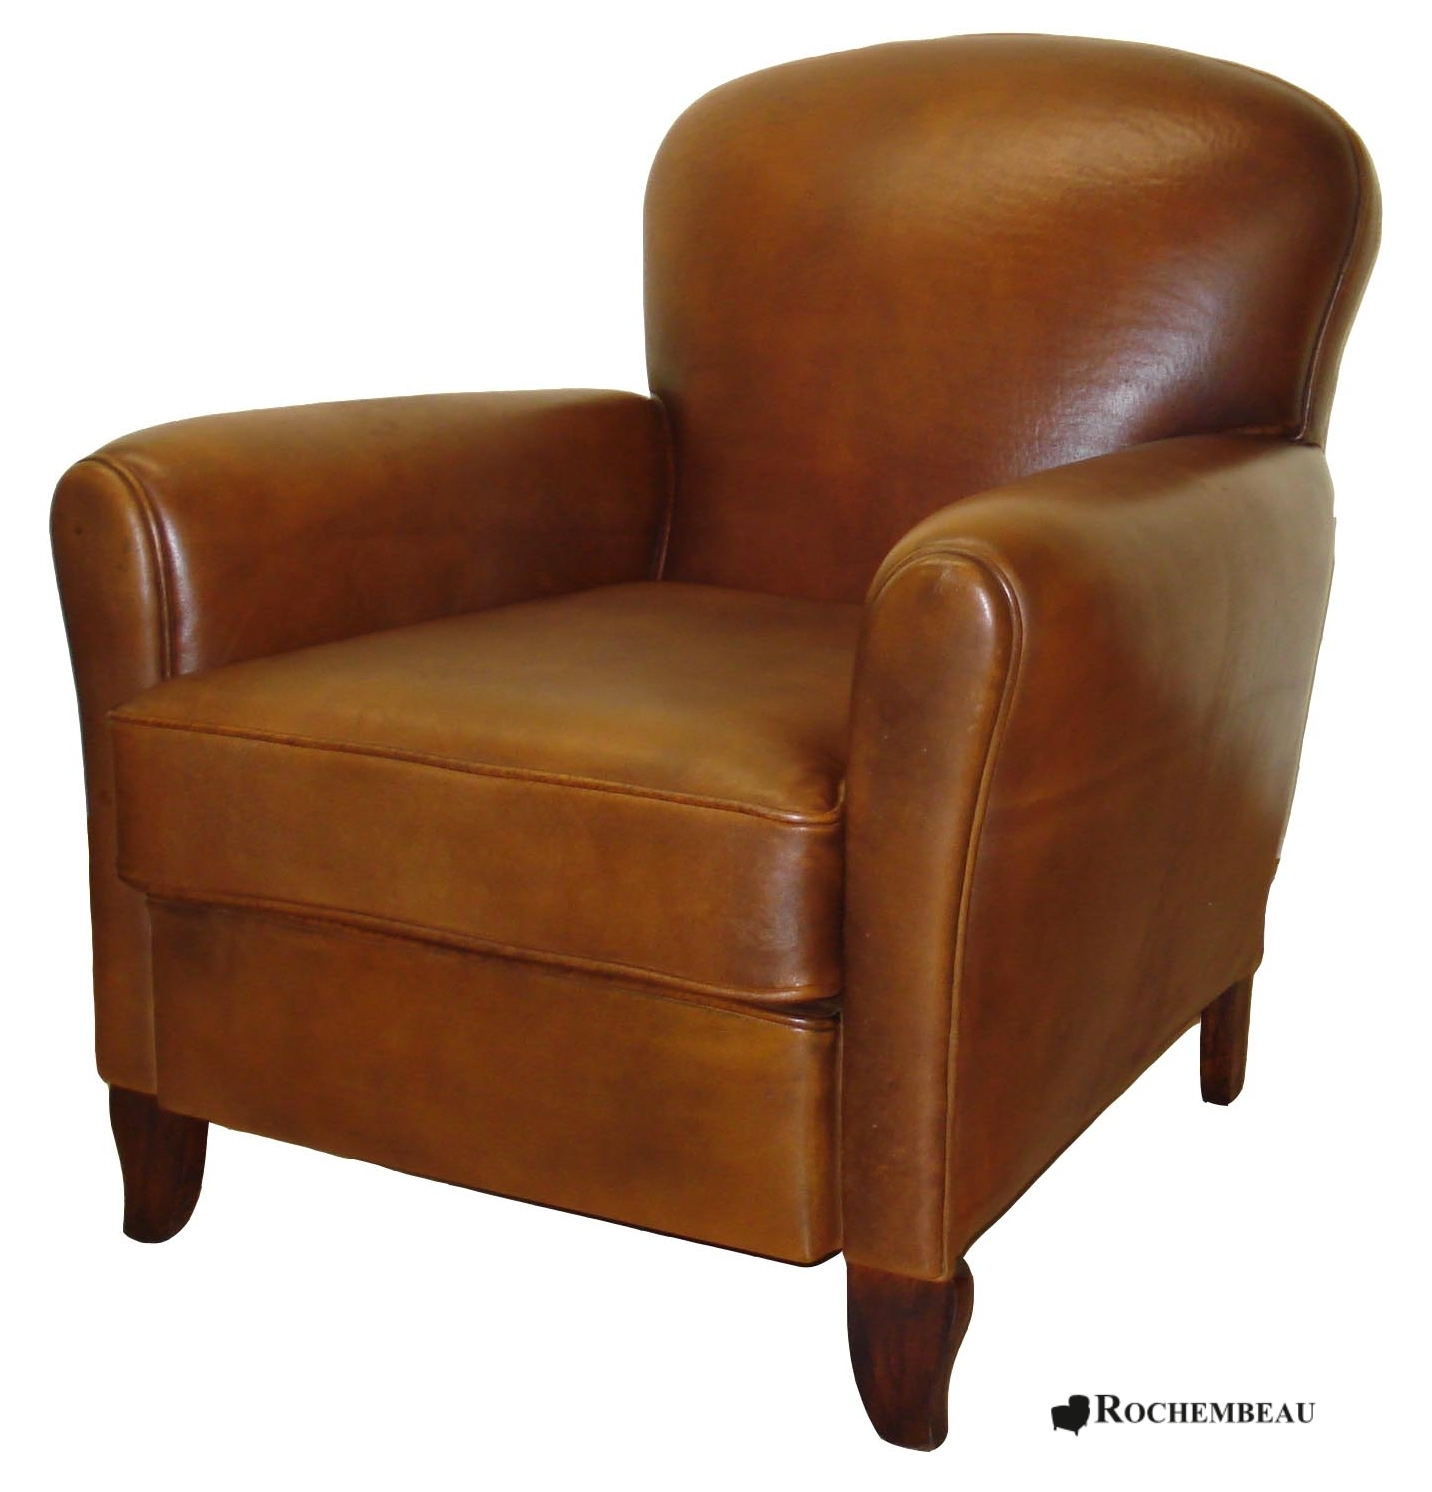 portsmouth club armchair rochembeau sheepskin leather. Black Bedroom Furniture Sets. Home Design Ideas